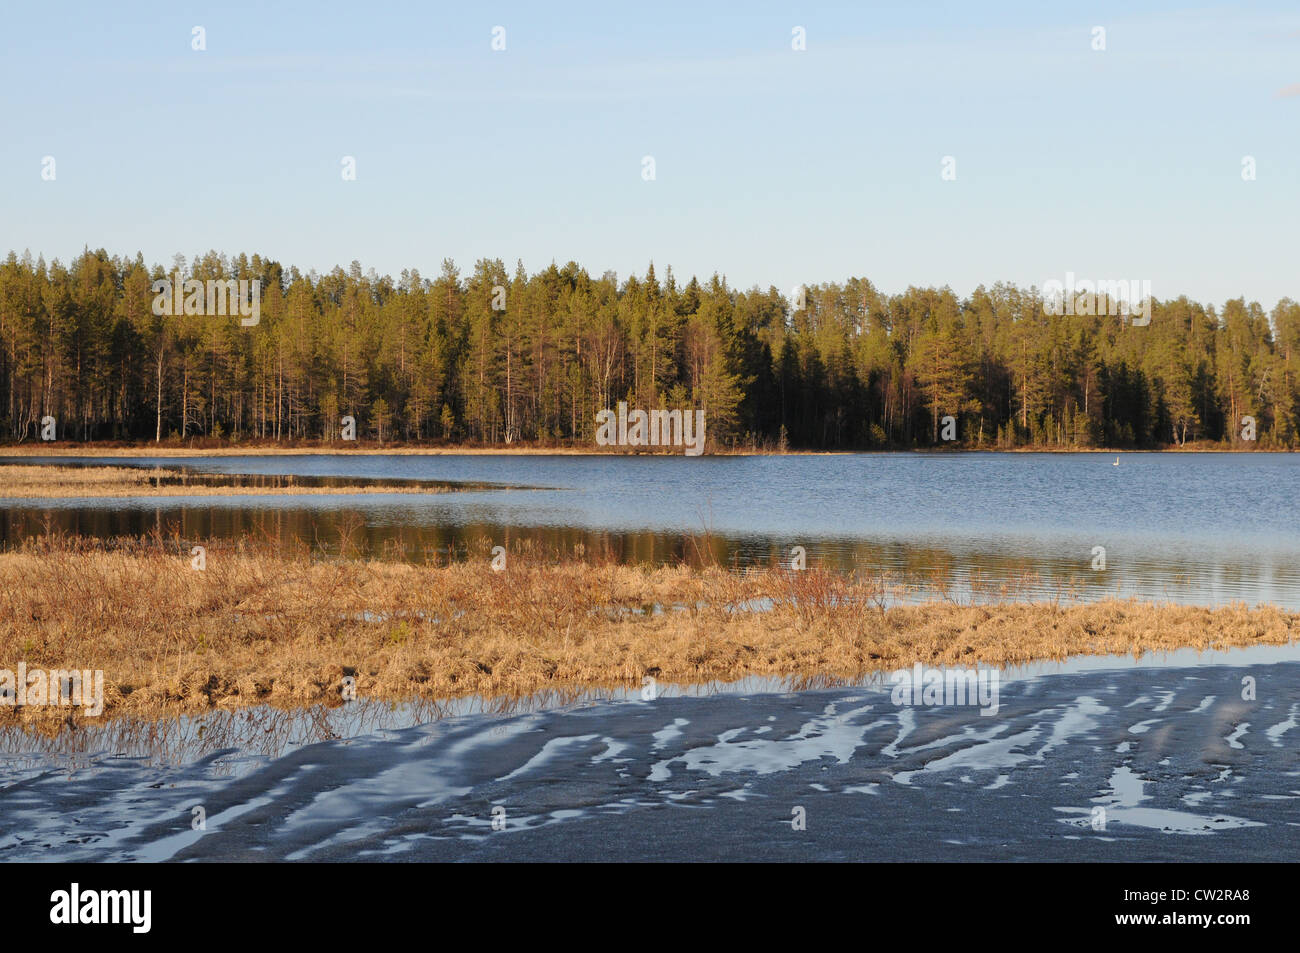 Typical Finnish lake in the coniferous forest, Kuusamo, Finland - Stock Image